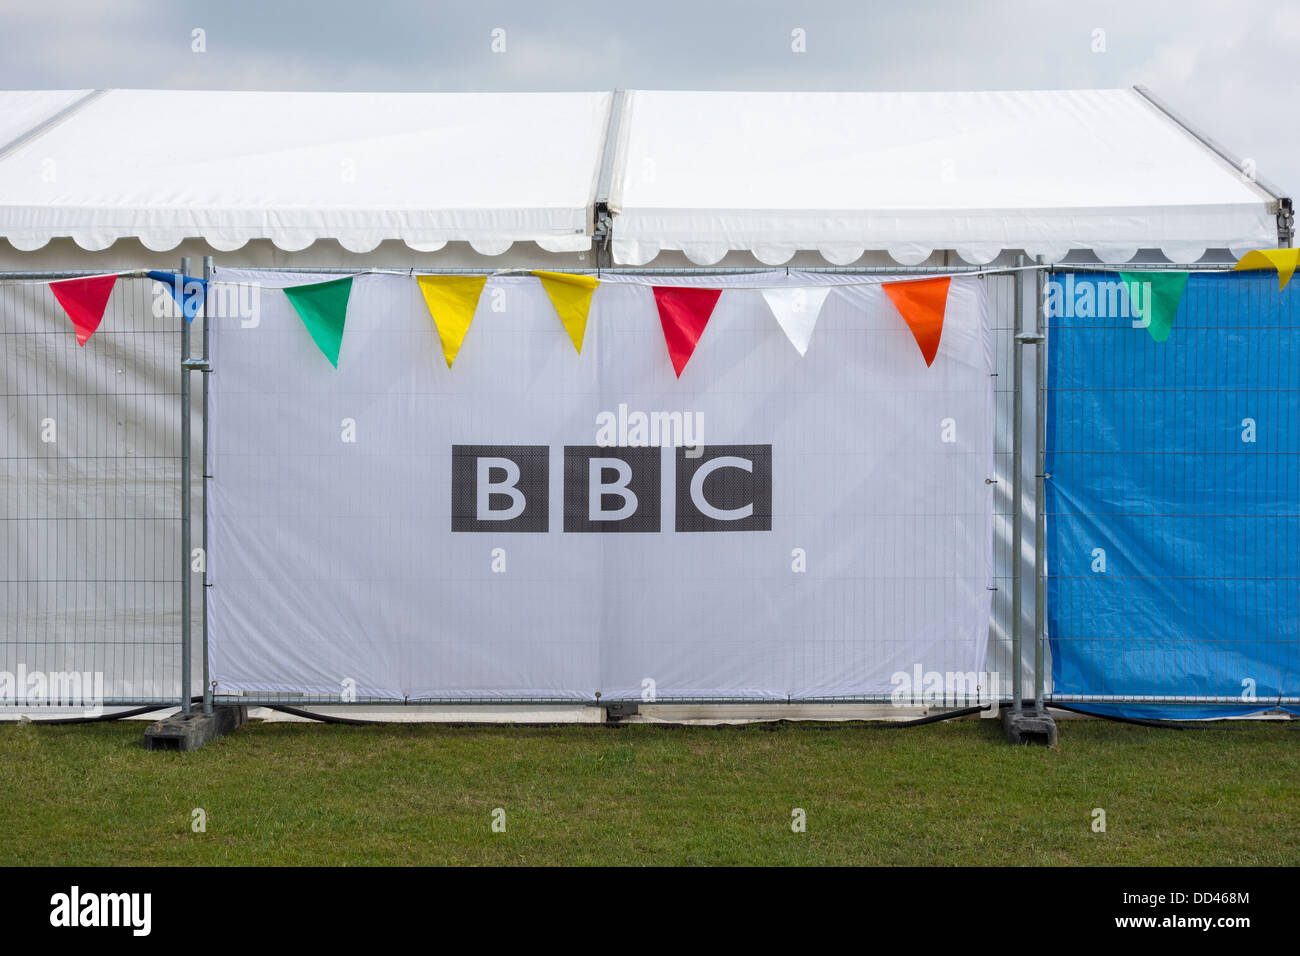 BBC Logo at a summer event - Stock Image